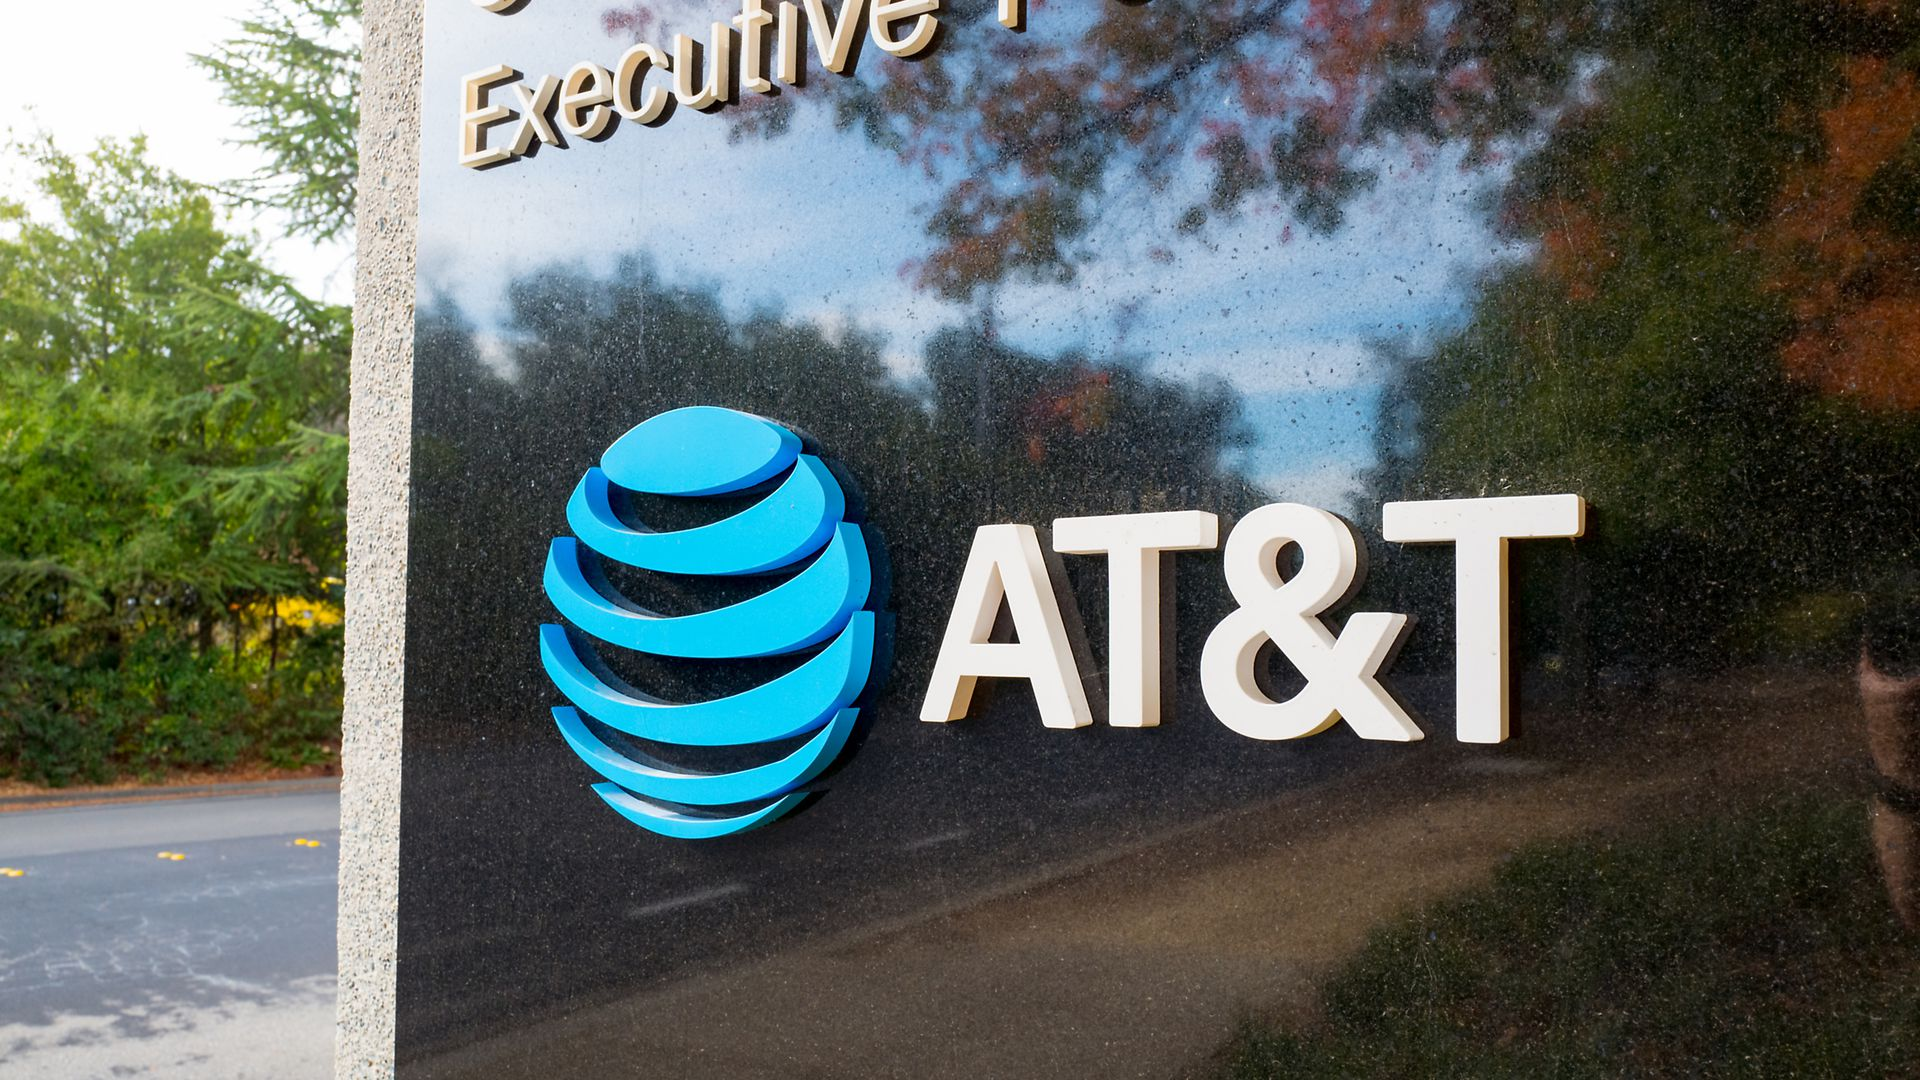 AT&T files FCC complaint against TV stations over DirecTV blackout disputes